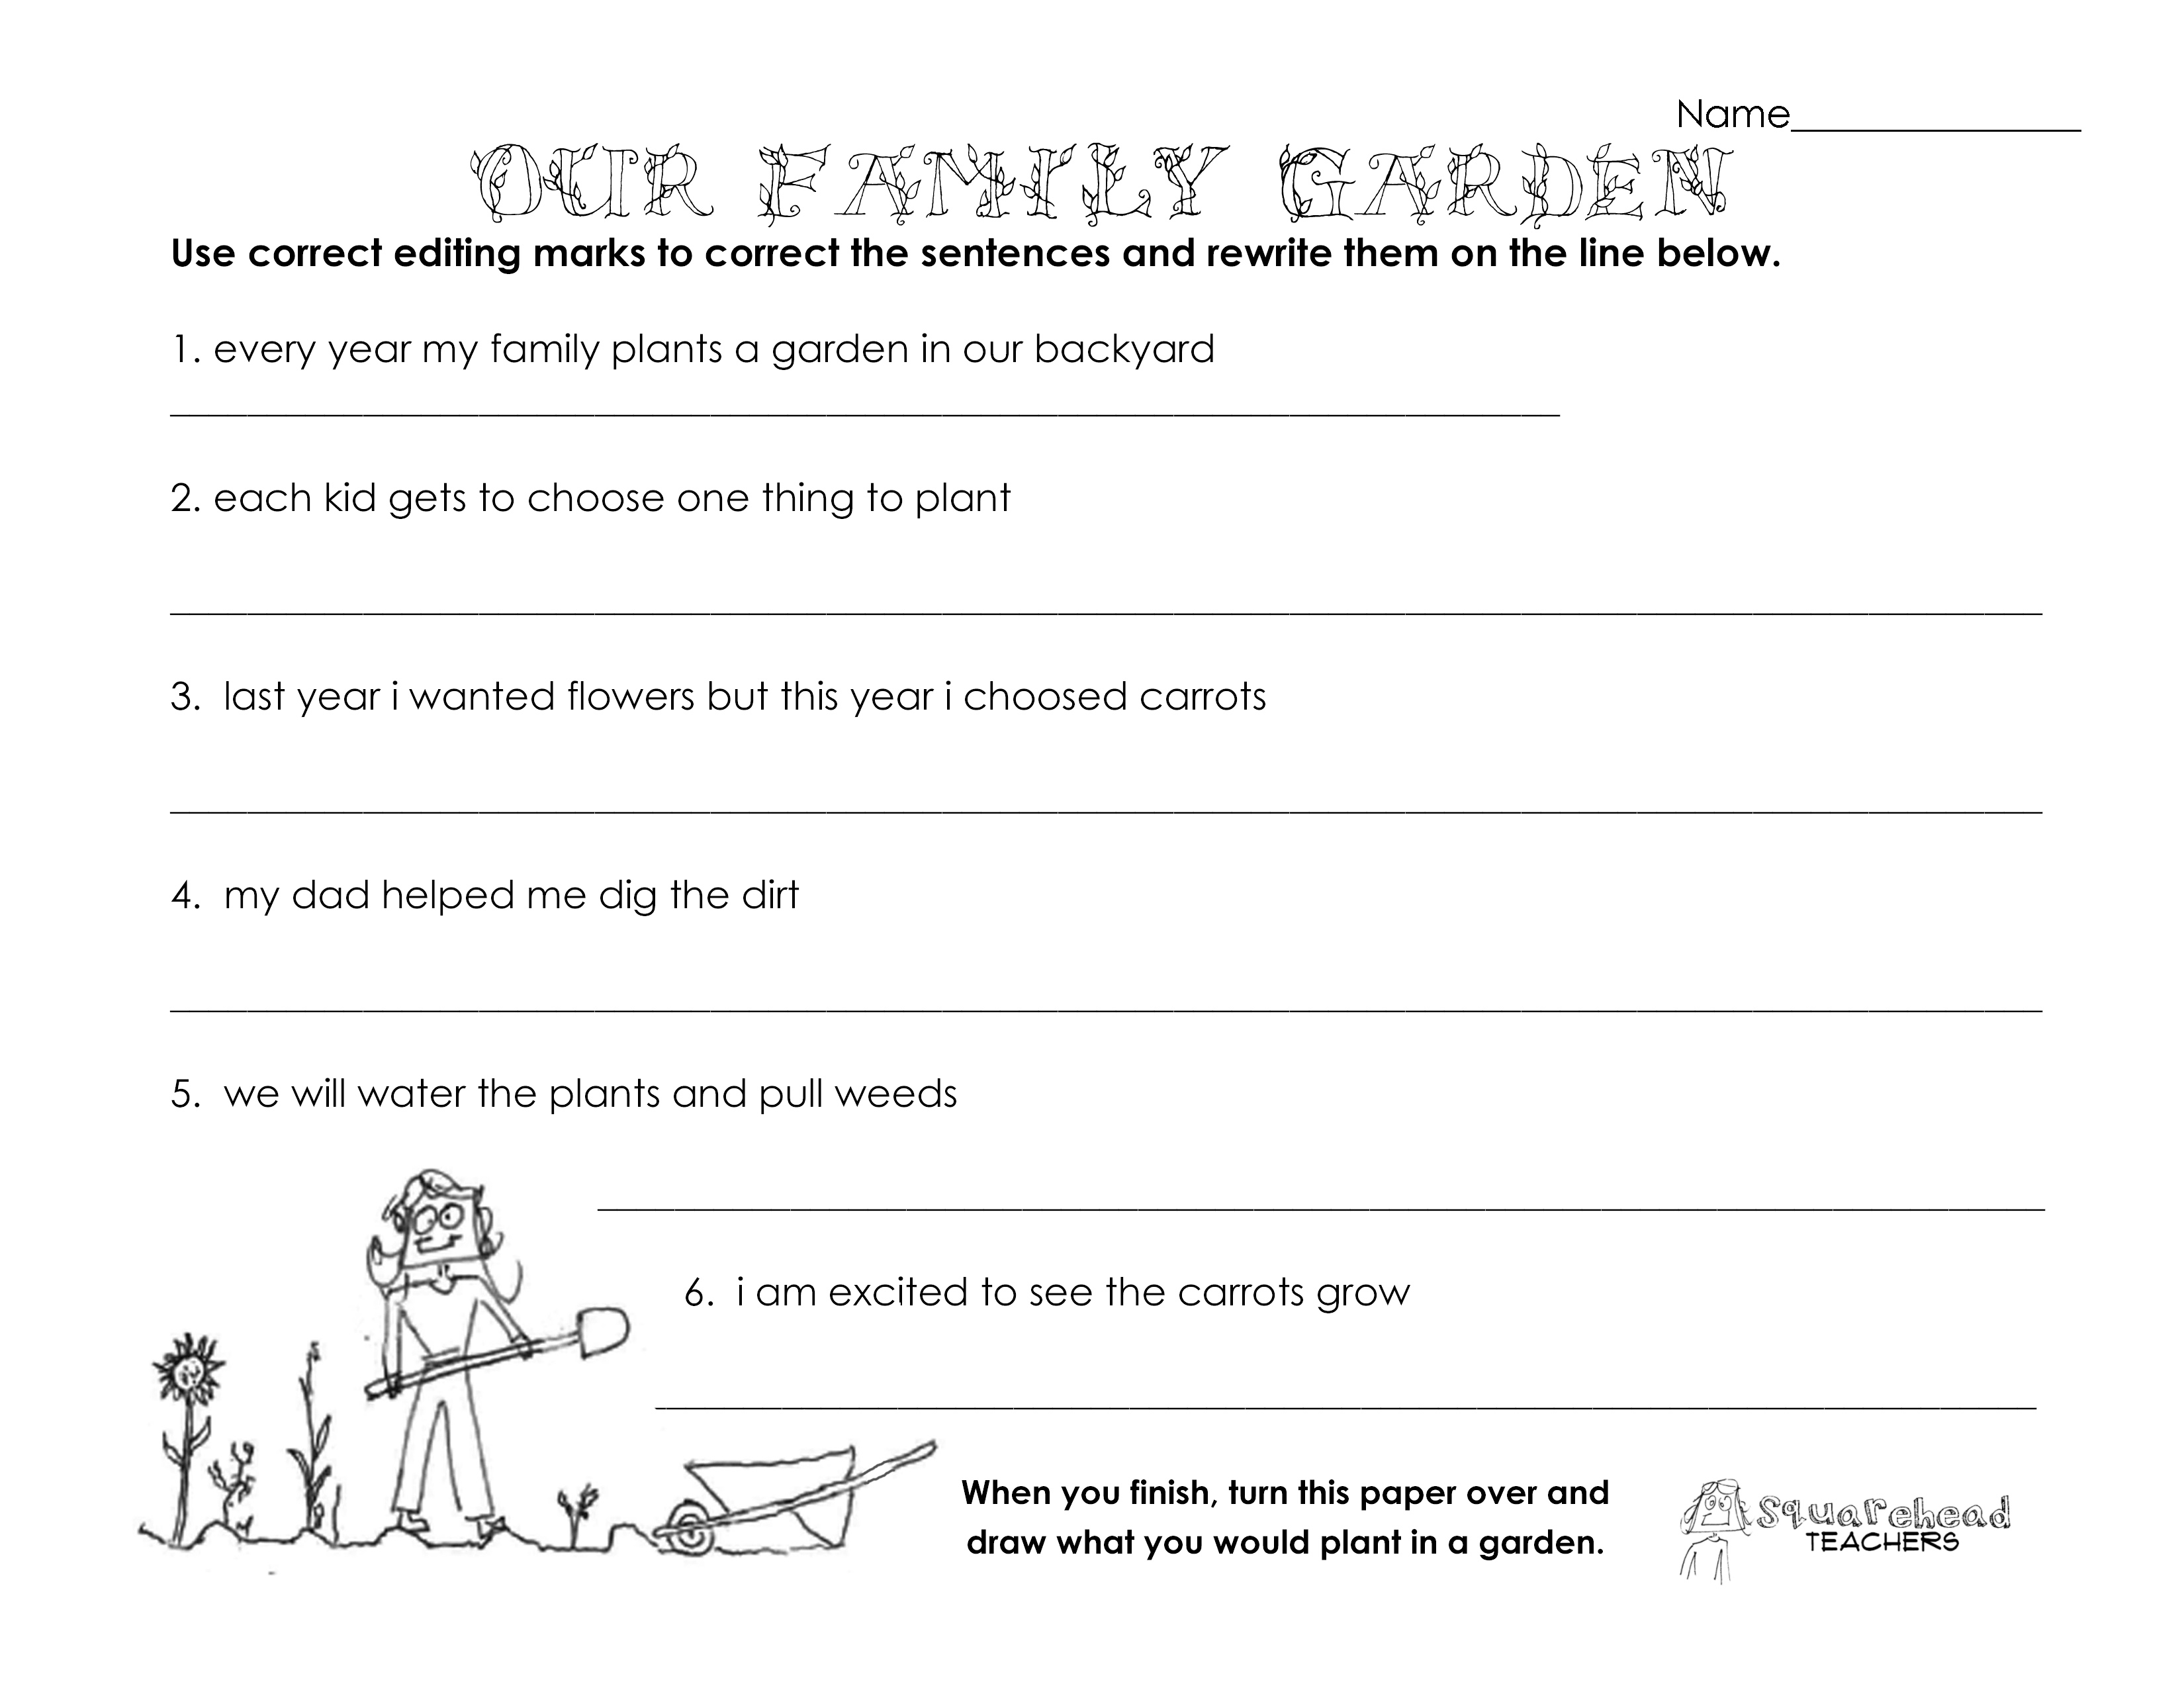 ... the last batch (6) of Squarehead grammar worksheets in a Google Doc